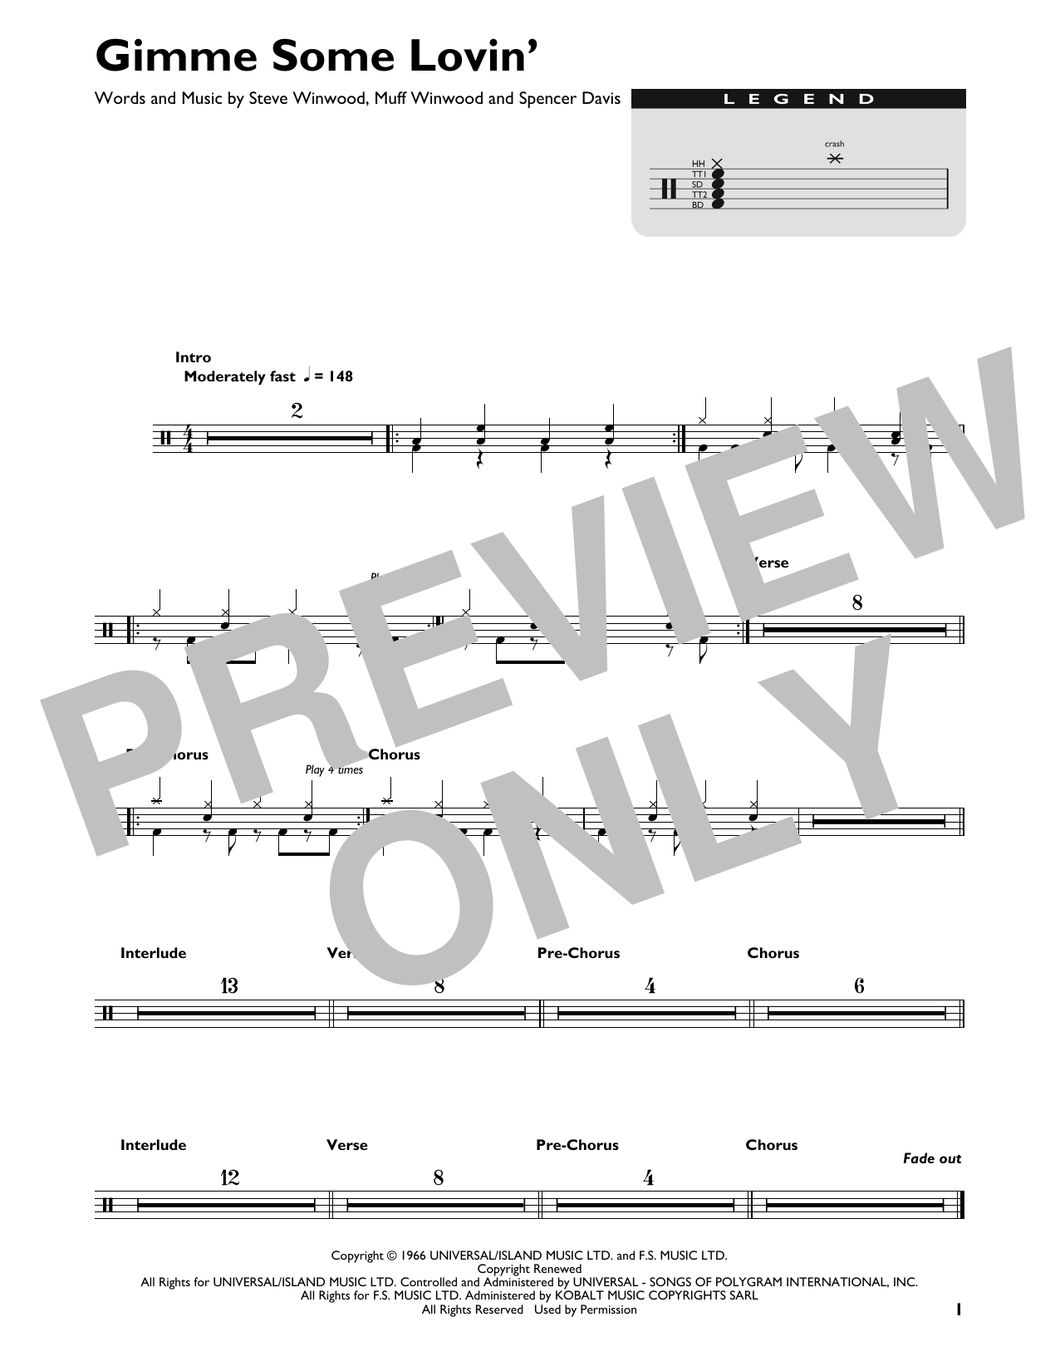 Gimme Some Lovin' - The Spencer Davis Group - Full Drum Transcription / Drum Sheet Music - SheetMusicDirect DT426814